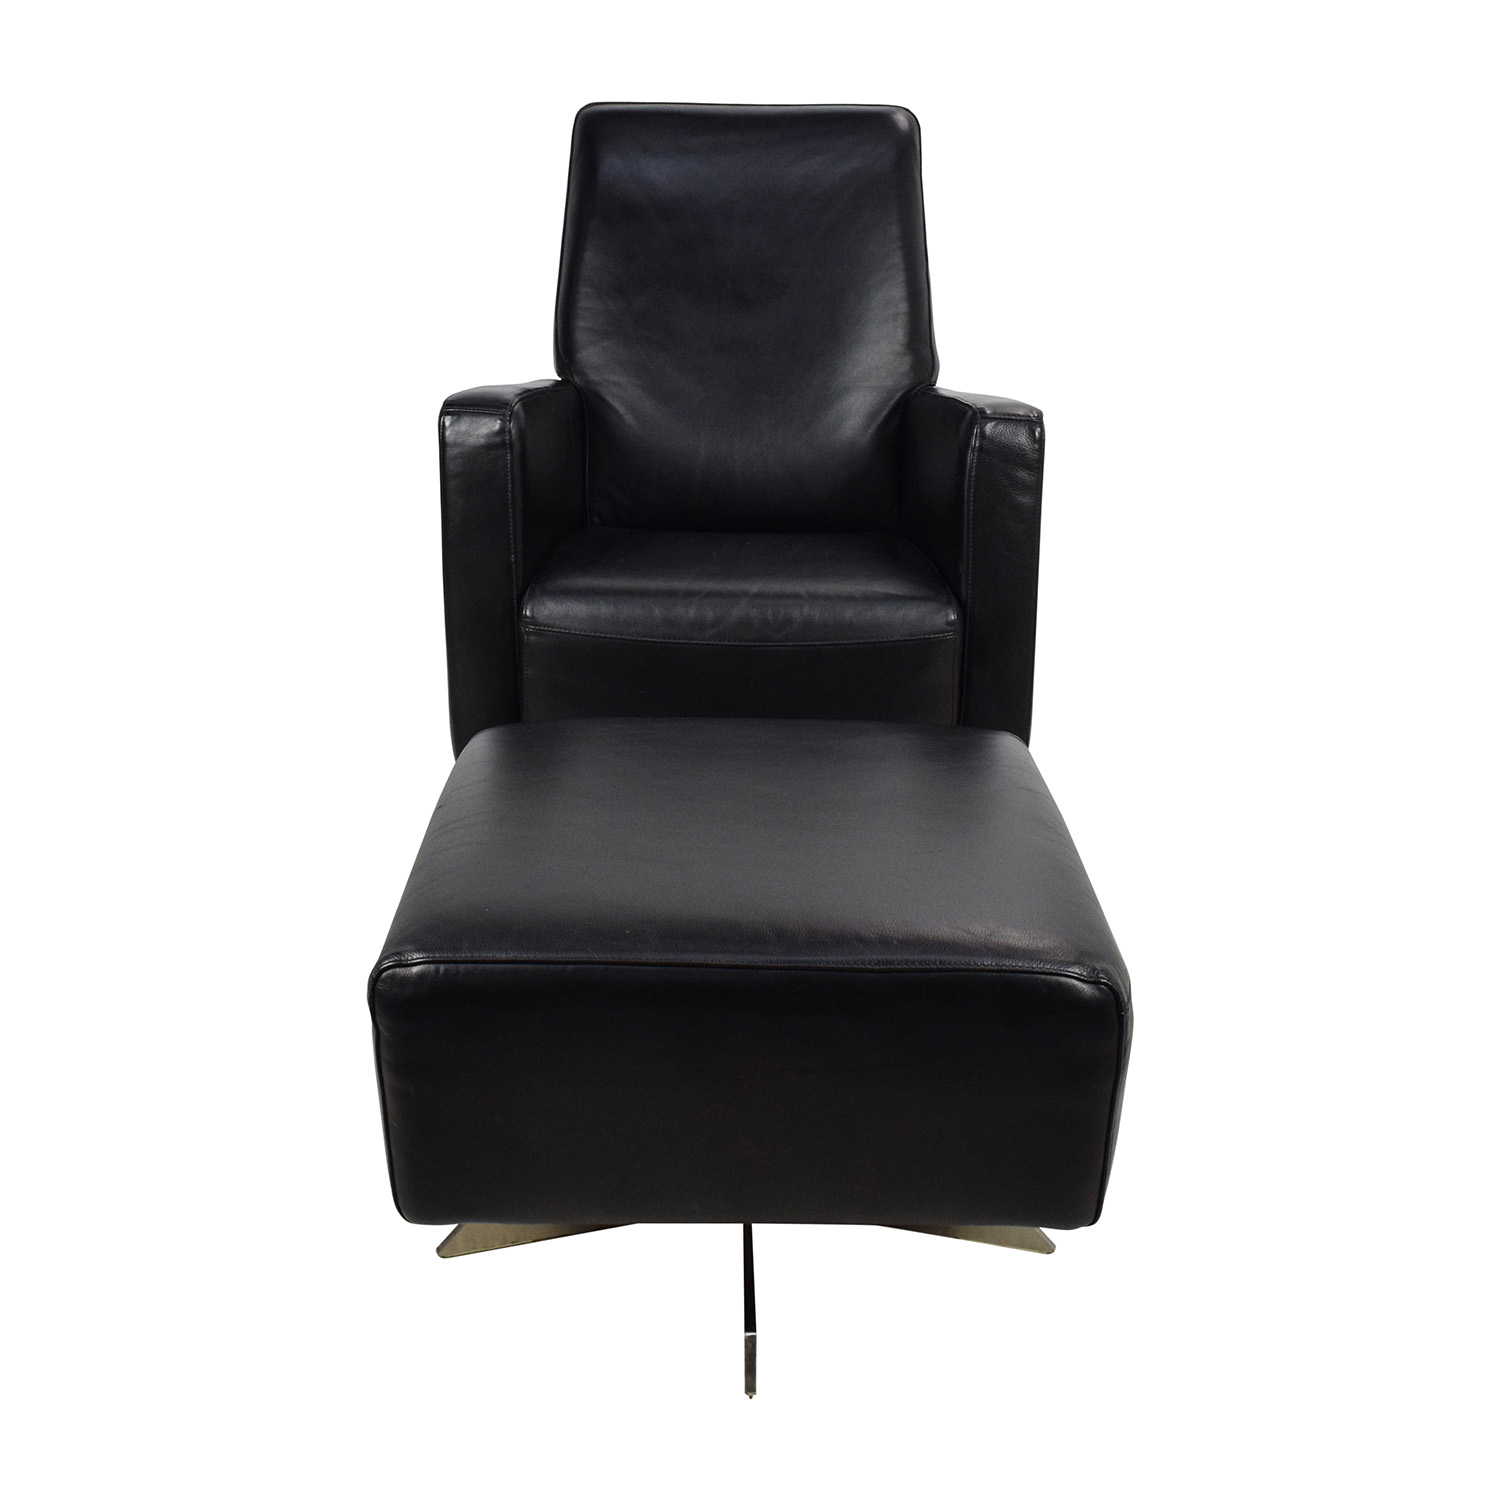 Black Swivel Chair 90 Off Natuzzi Natuzzi Black Leather Swivel Chair With